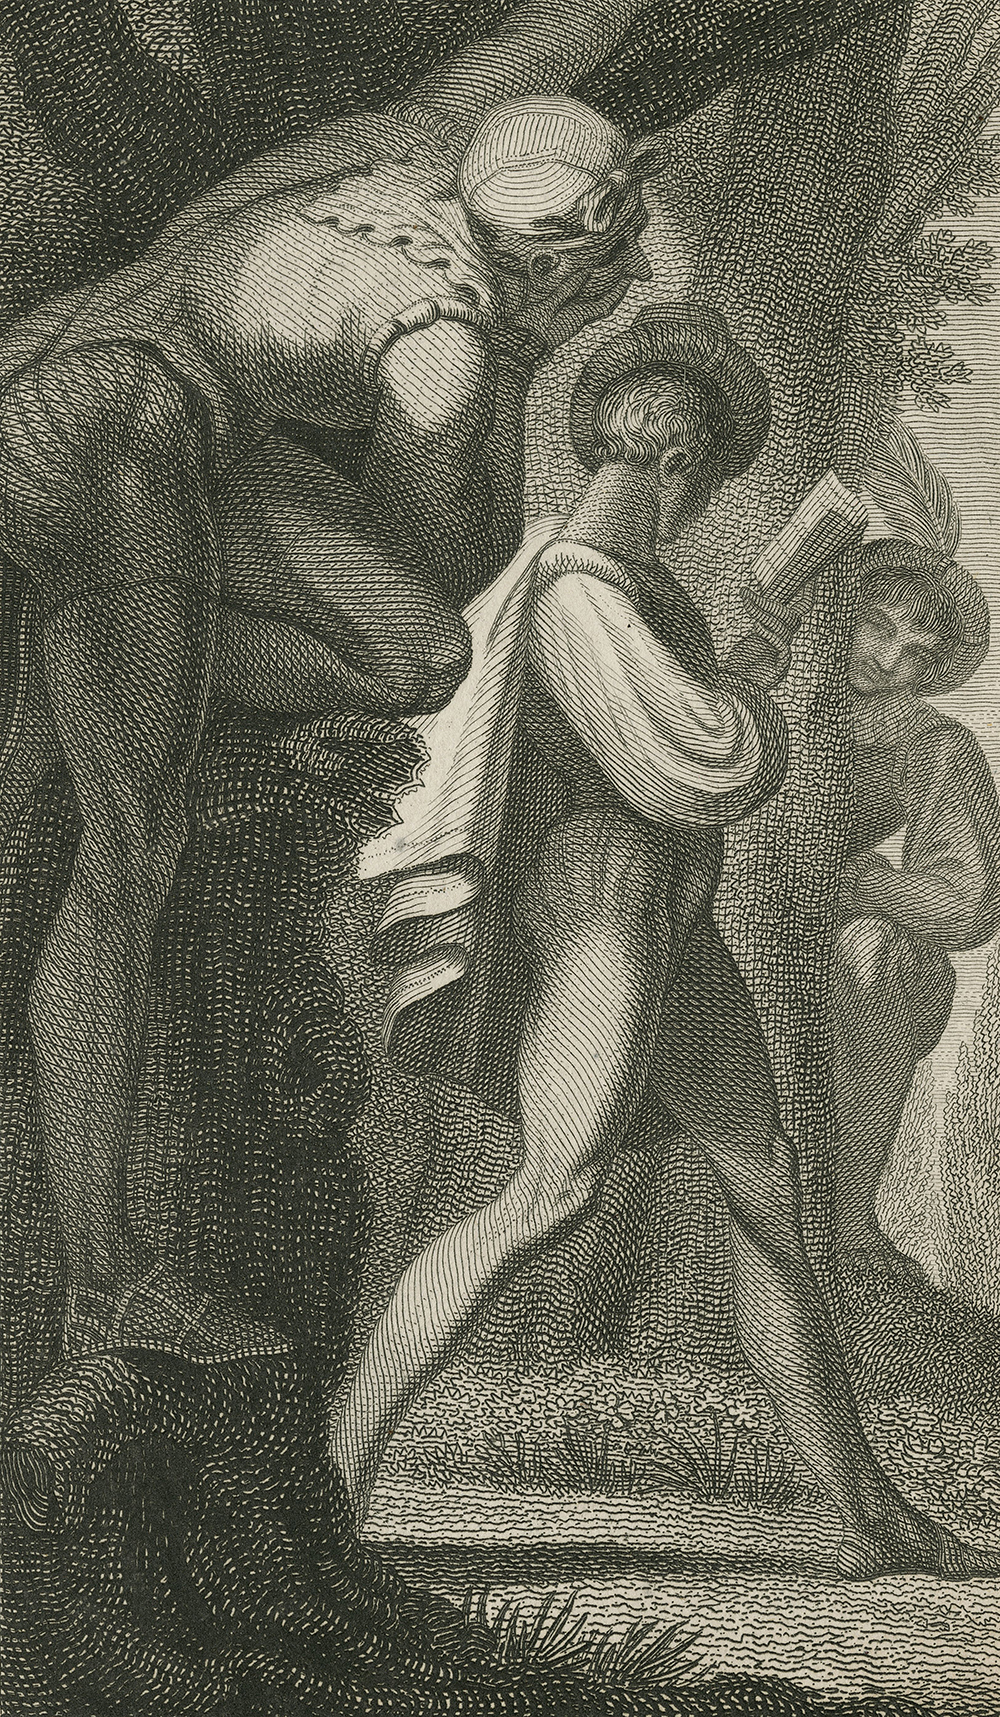 """Scene from """"Love's Labour Lost,"""" act 4, scene 3. Folger Shakespeare Library."""